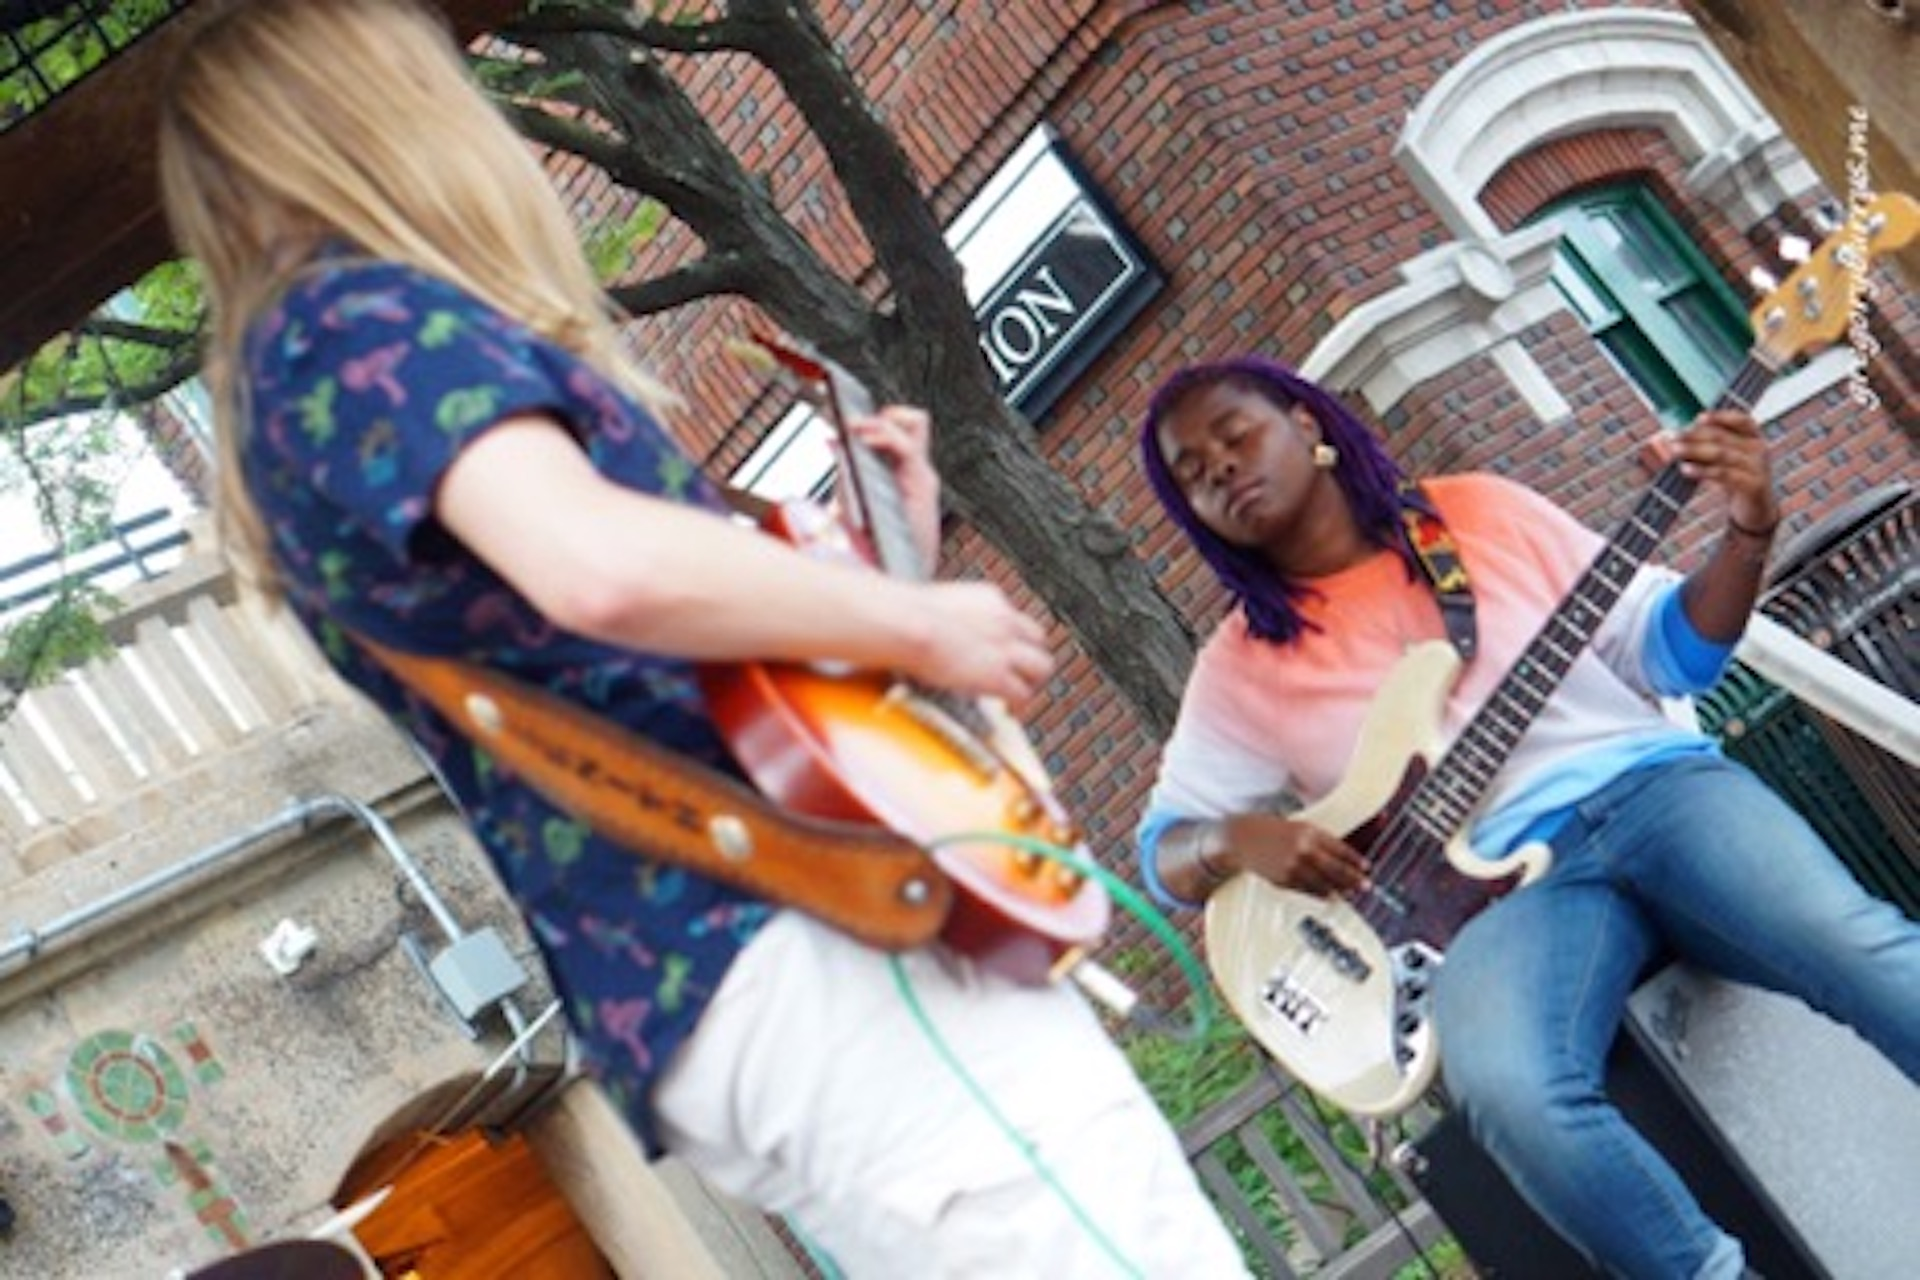 Guitarists playing in South Orange.jpg